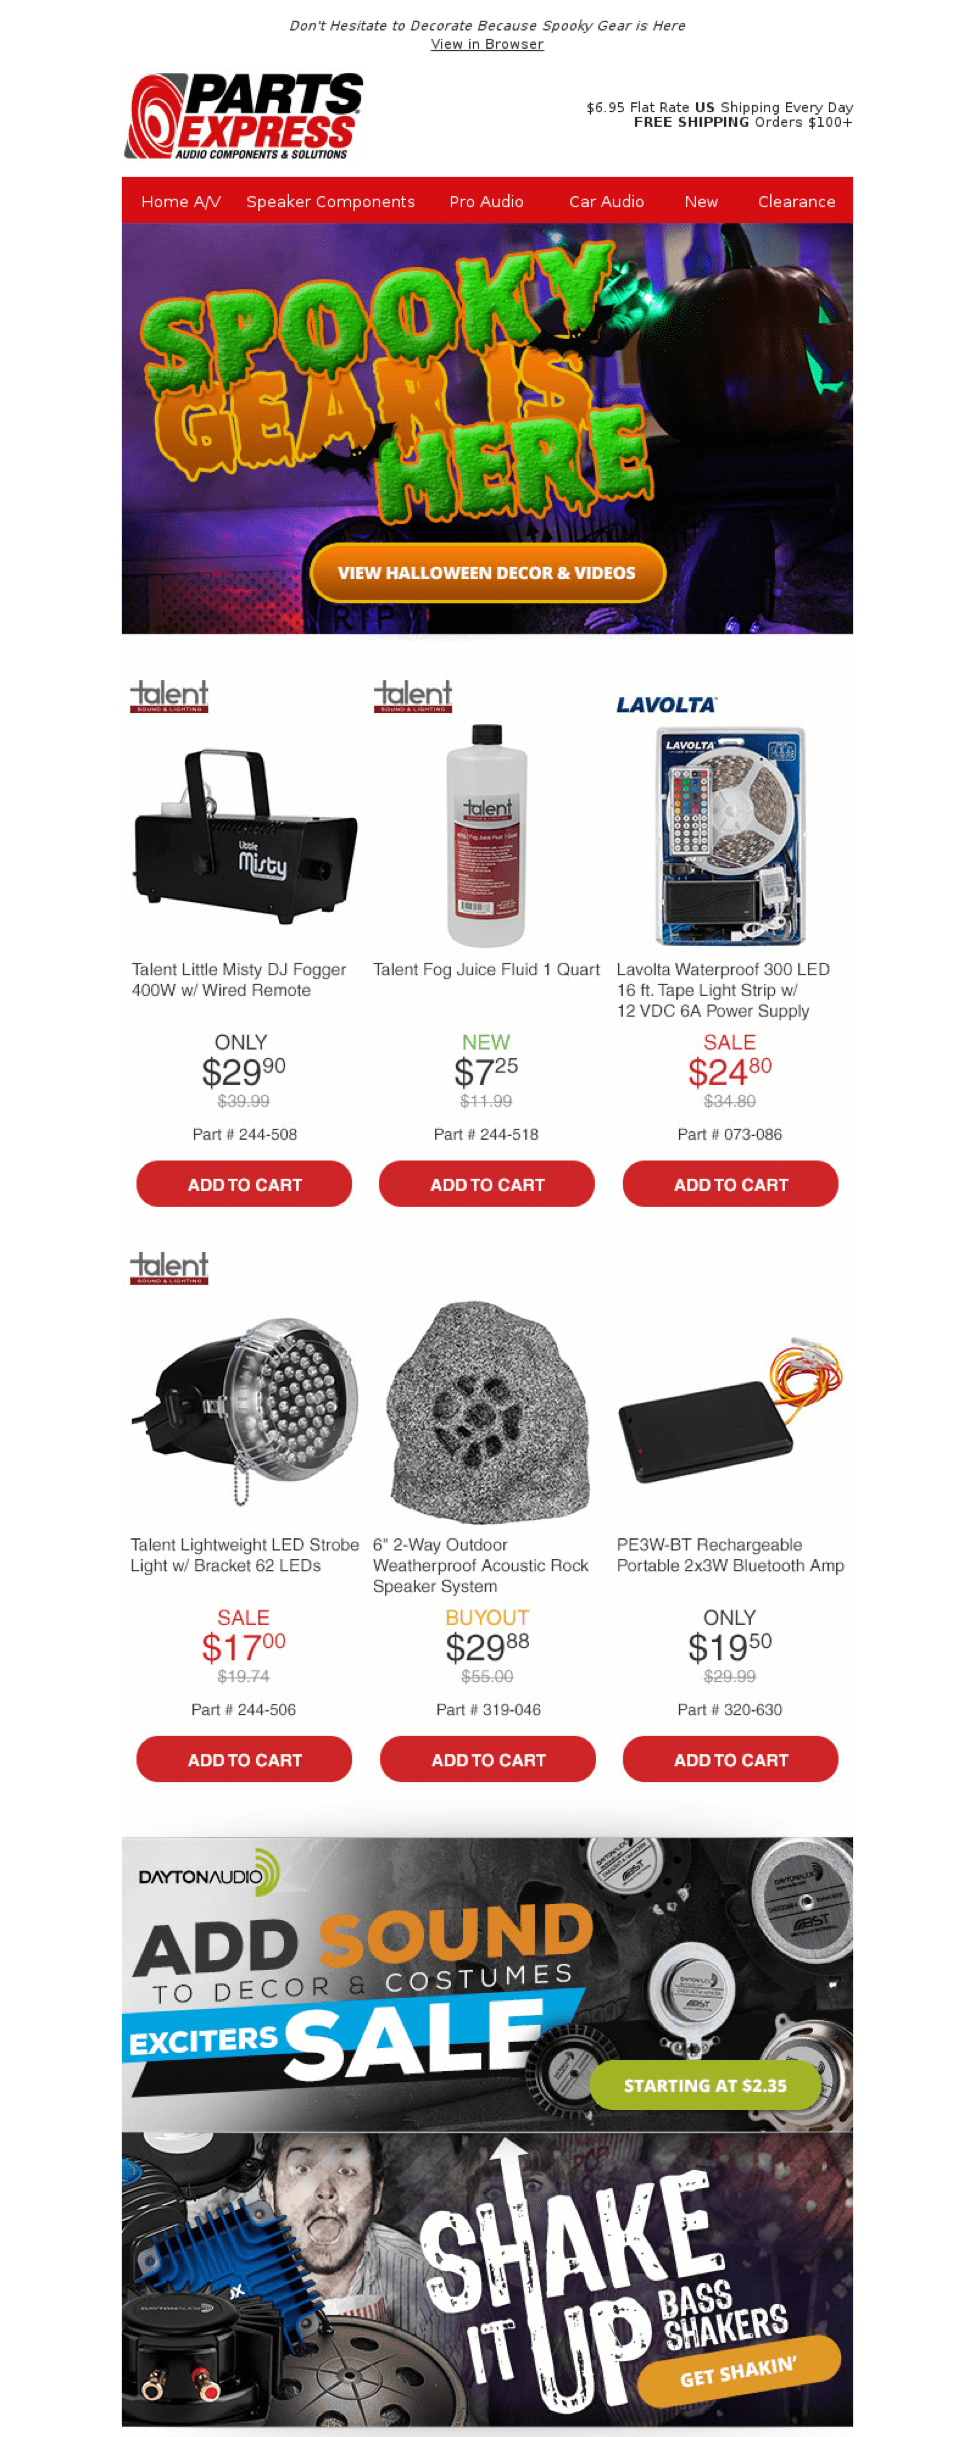 Parts Express Halloween email screenshot